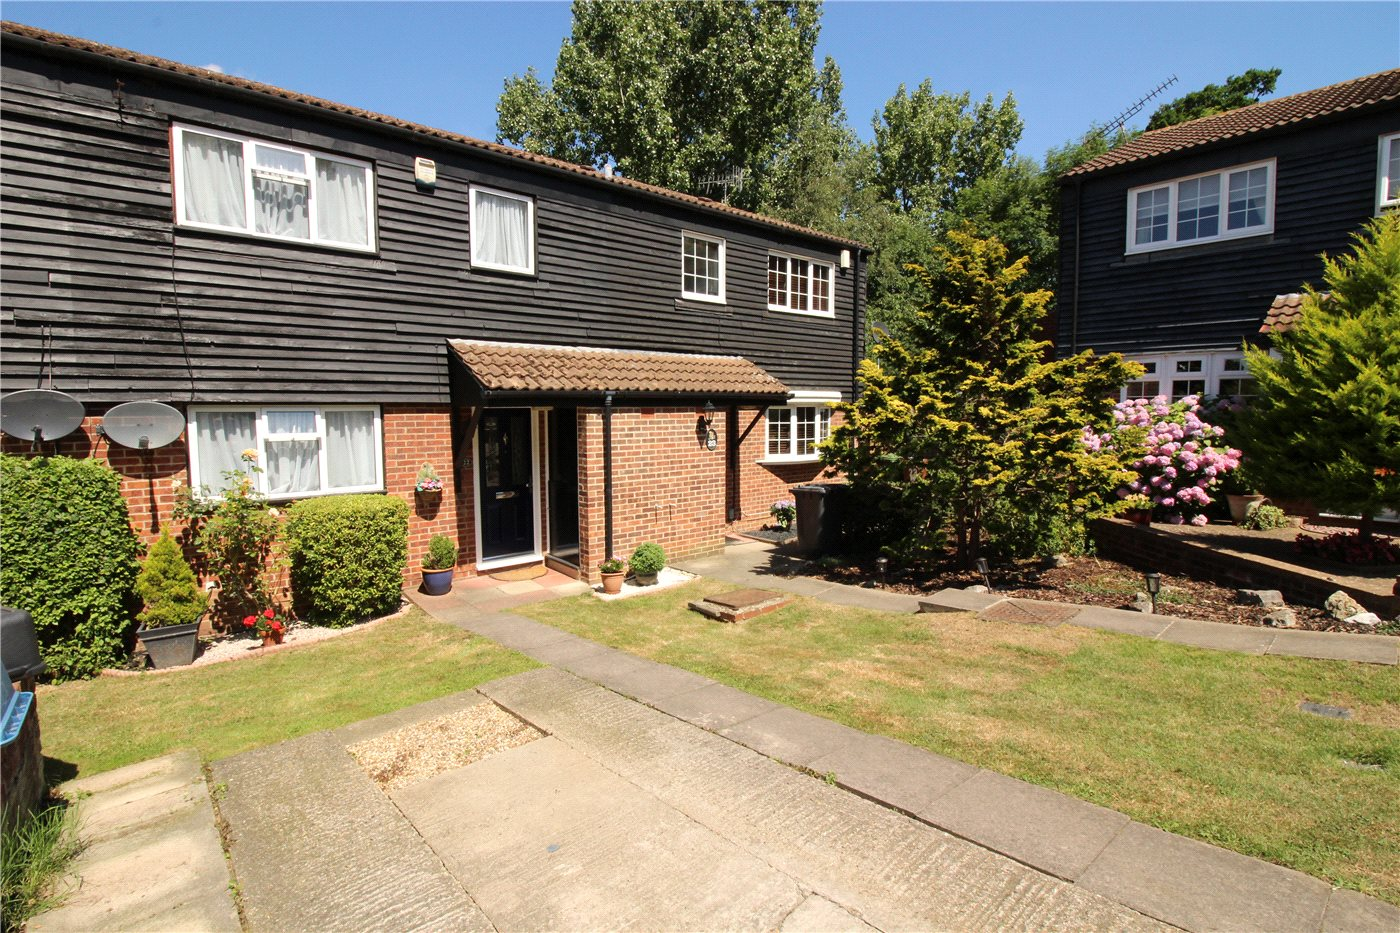 3 bedroom house for sale wilcox close borehamwood wd6